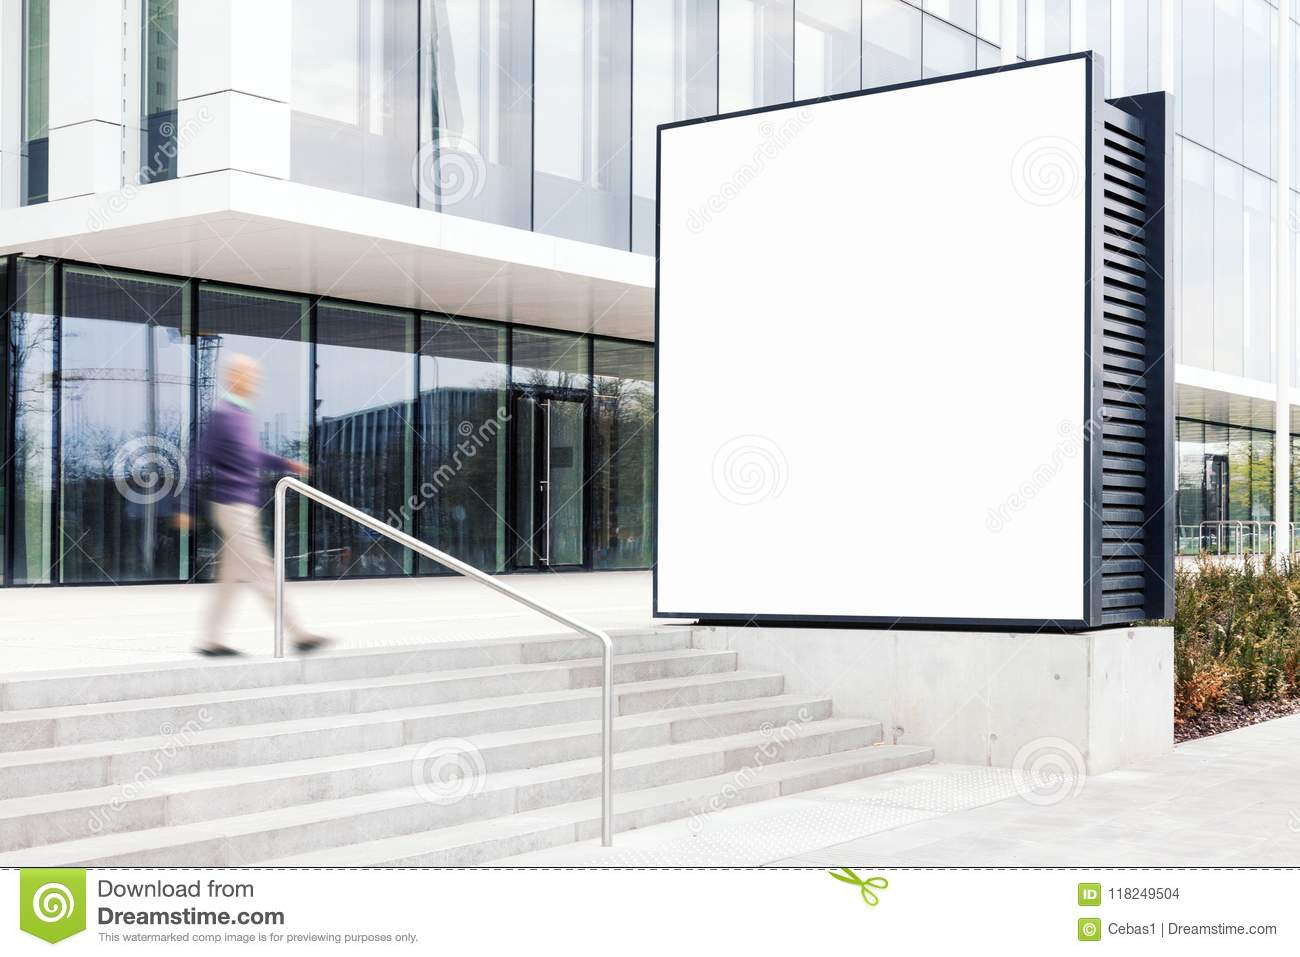 Outdoor billboard mockup in modern business district